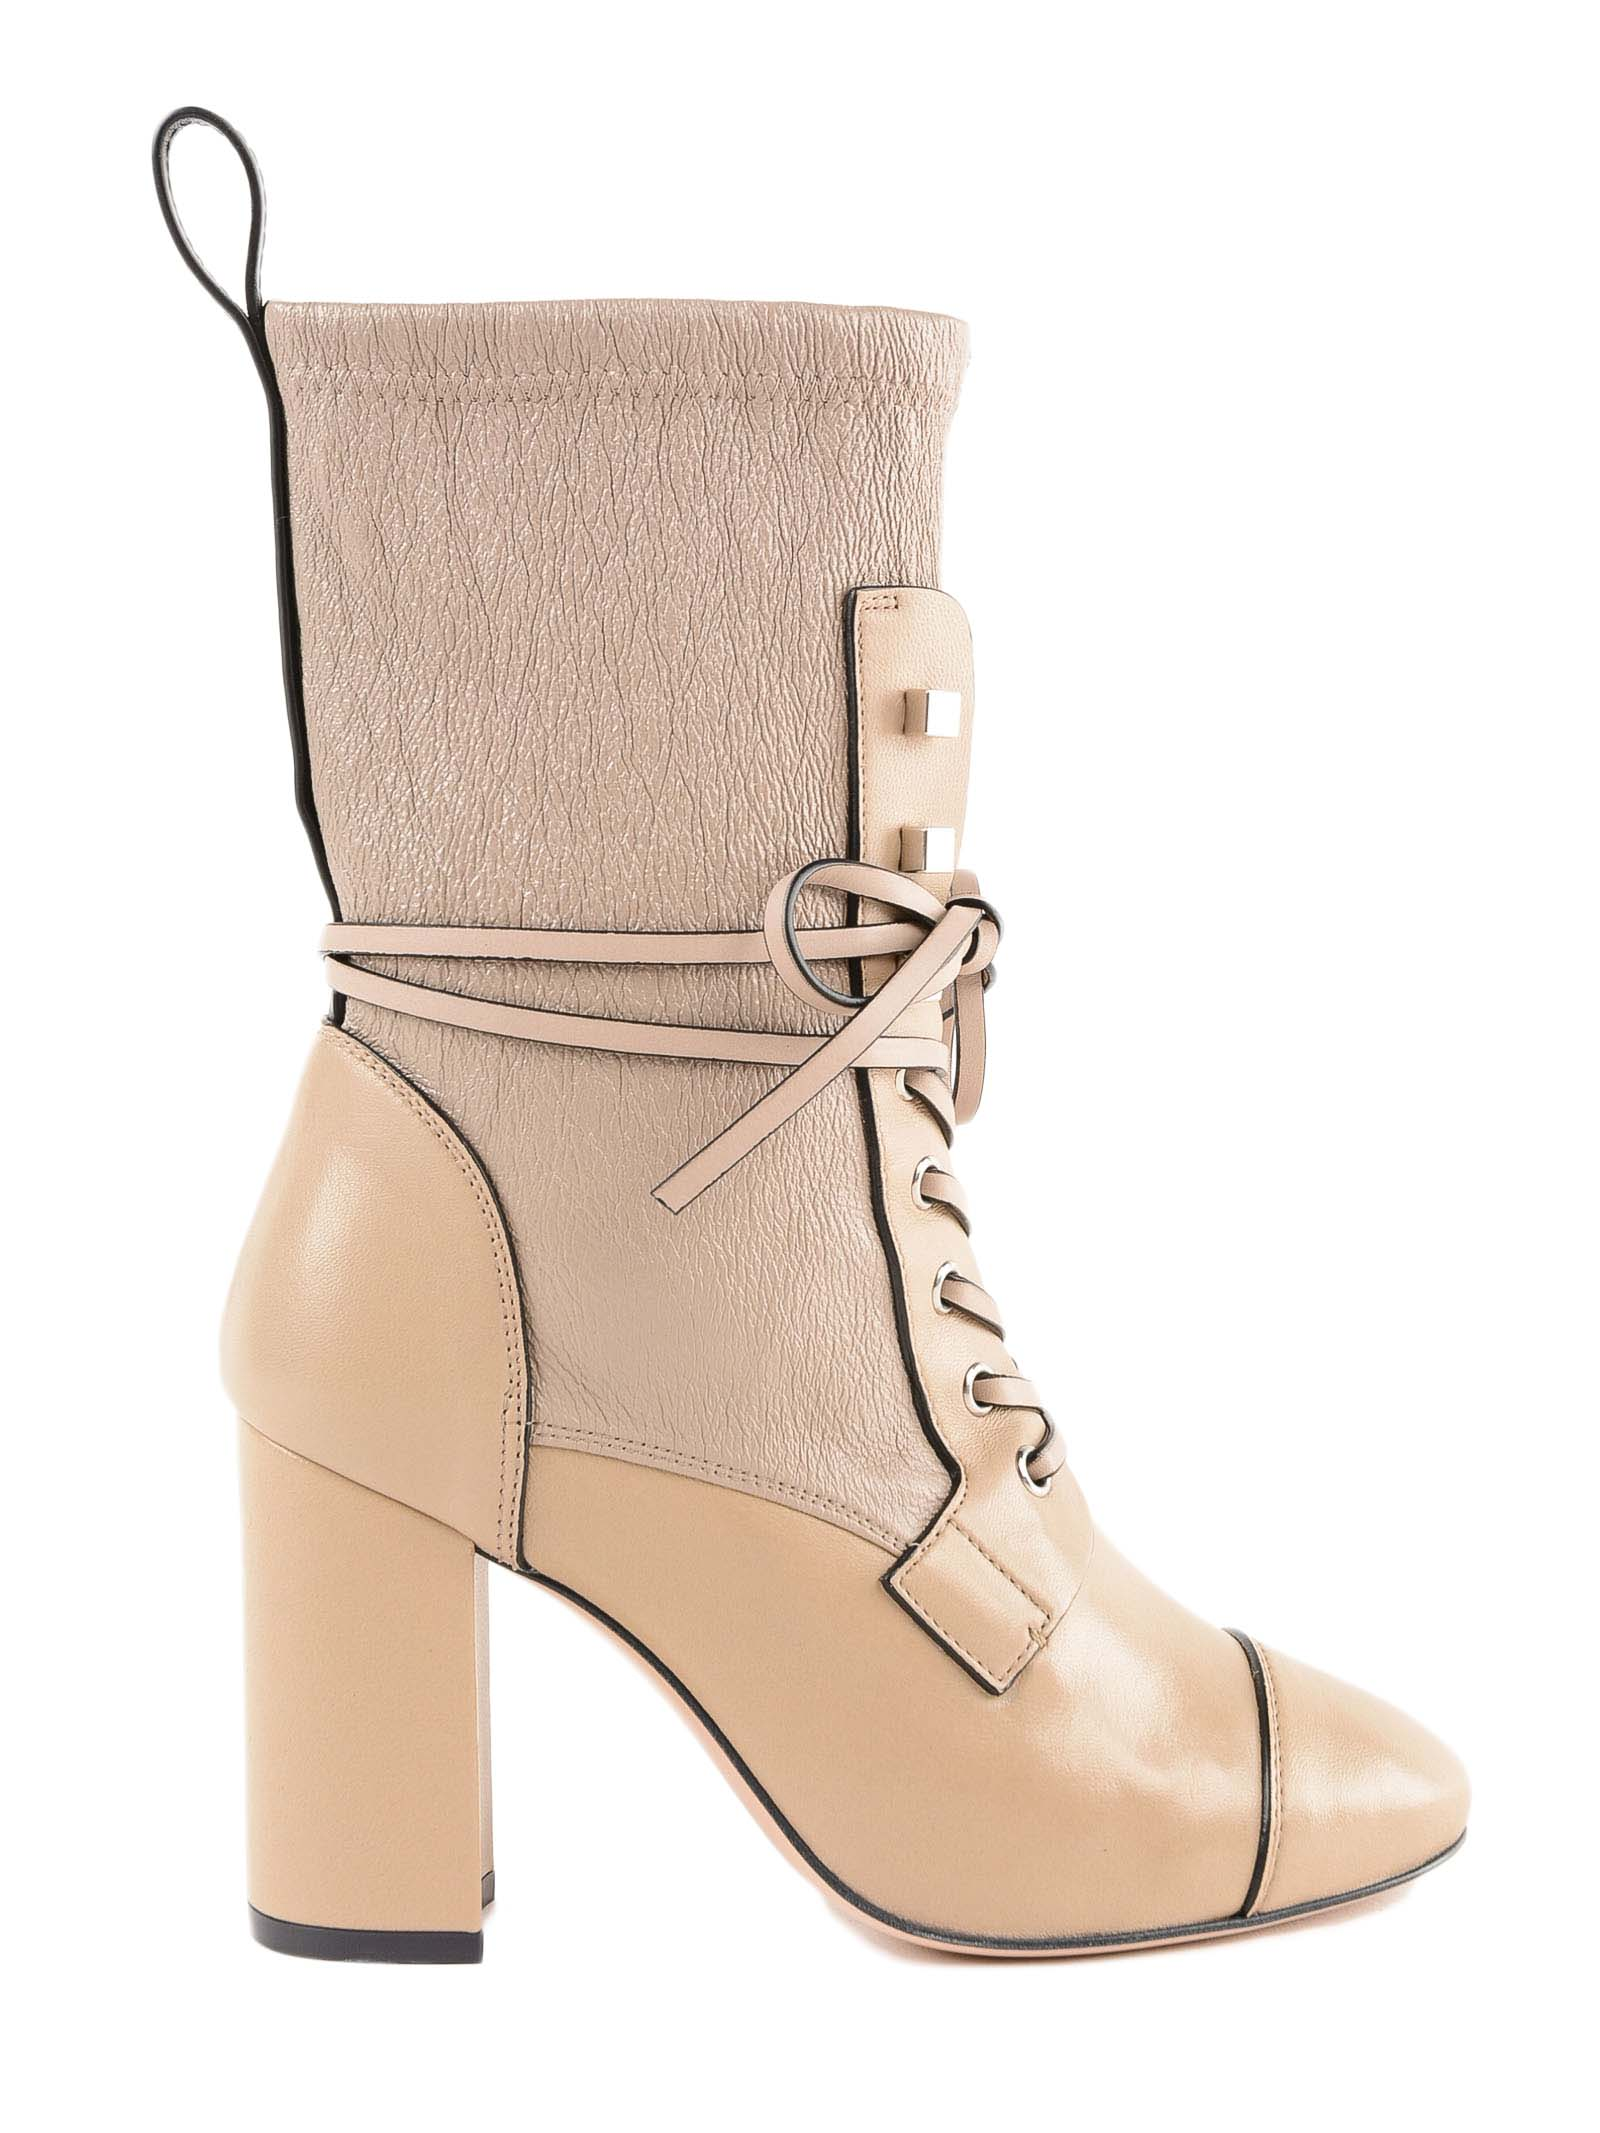 Stuart Weitzman Gleaming Tripon Lace-up Boots